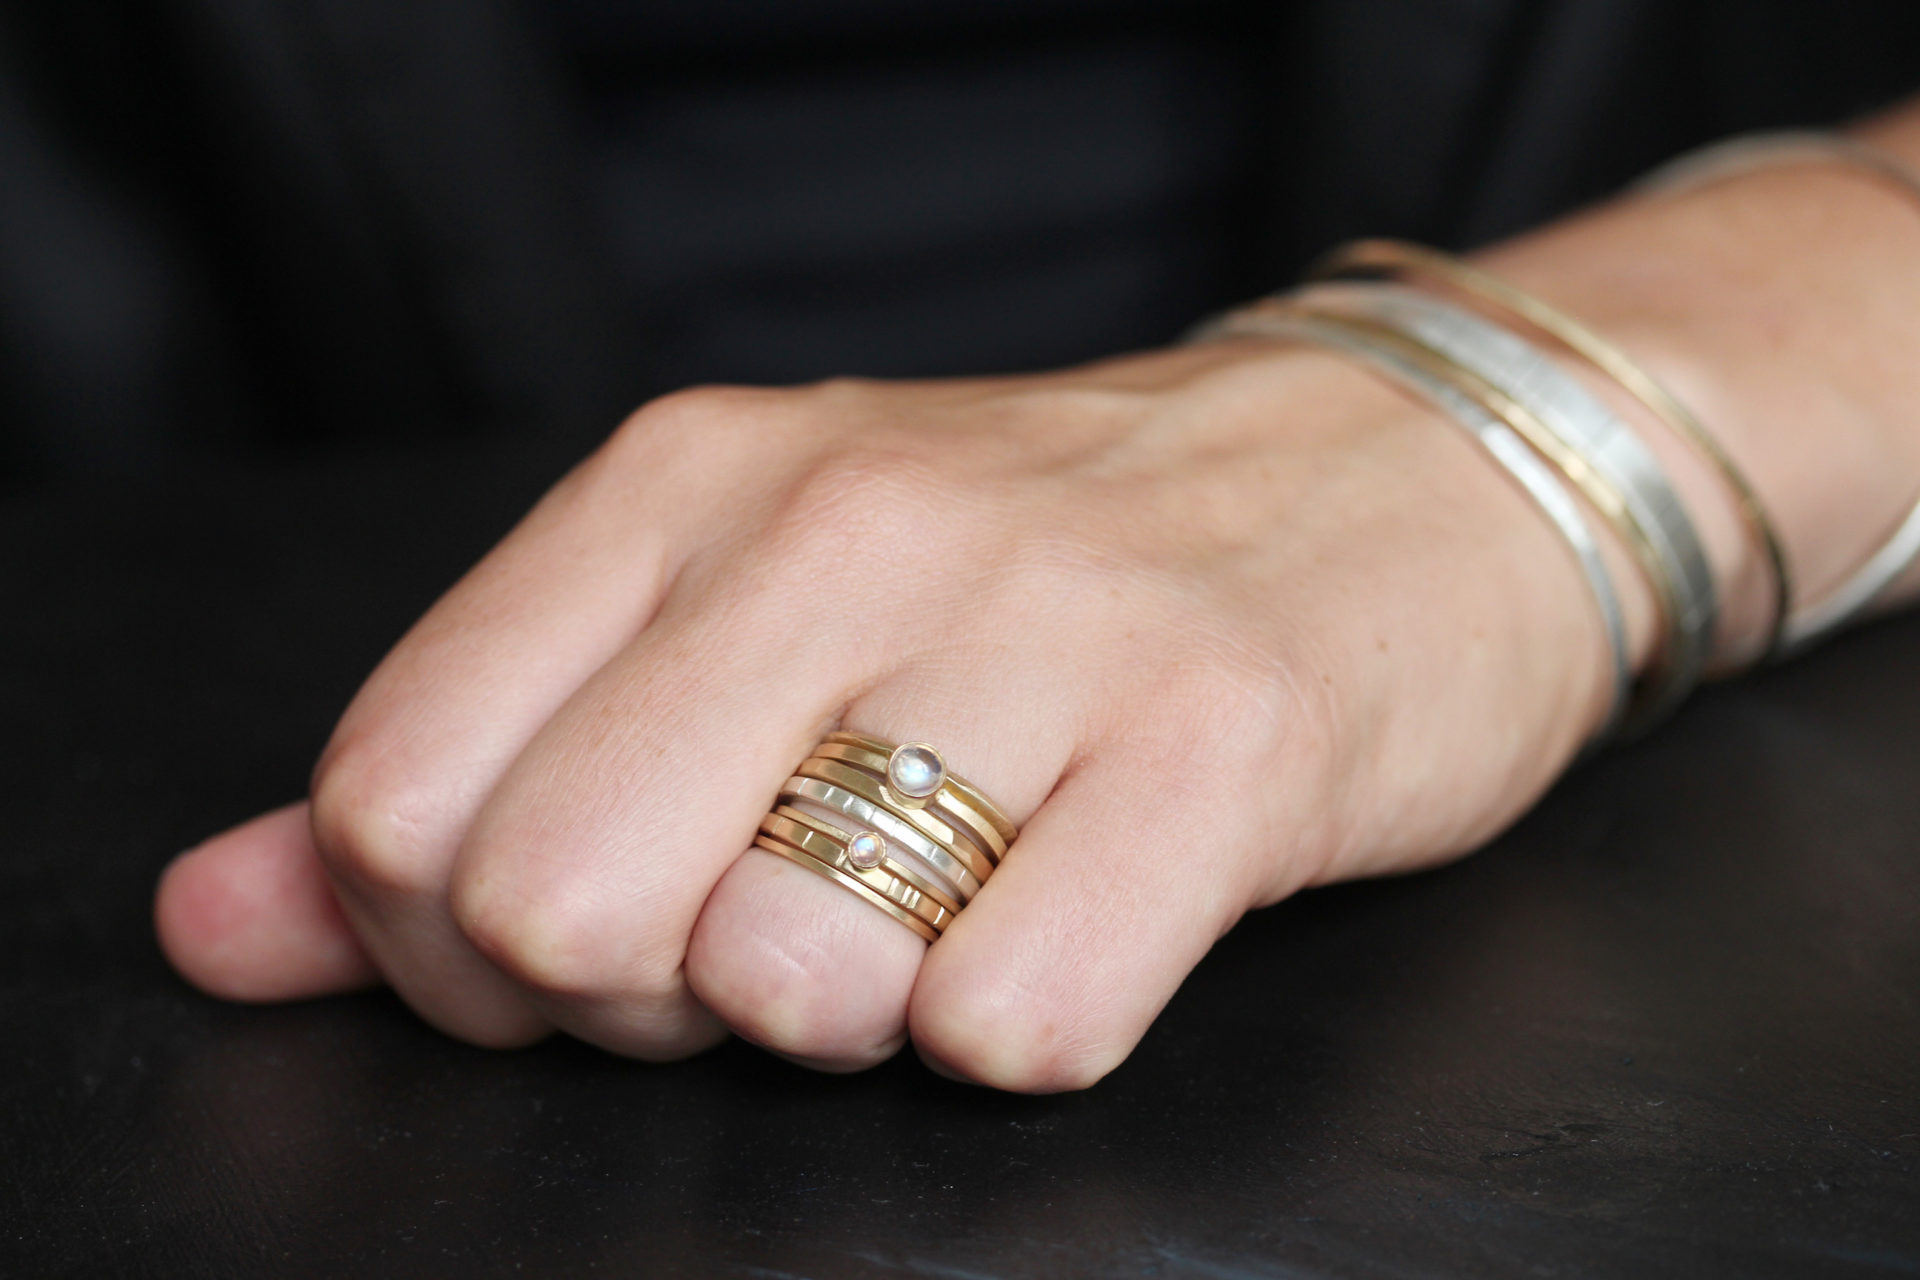 photo of a closed hand with rings and bangle bracelets